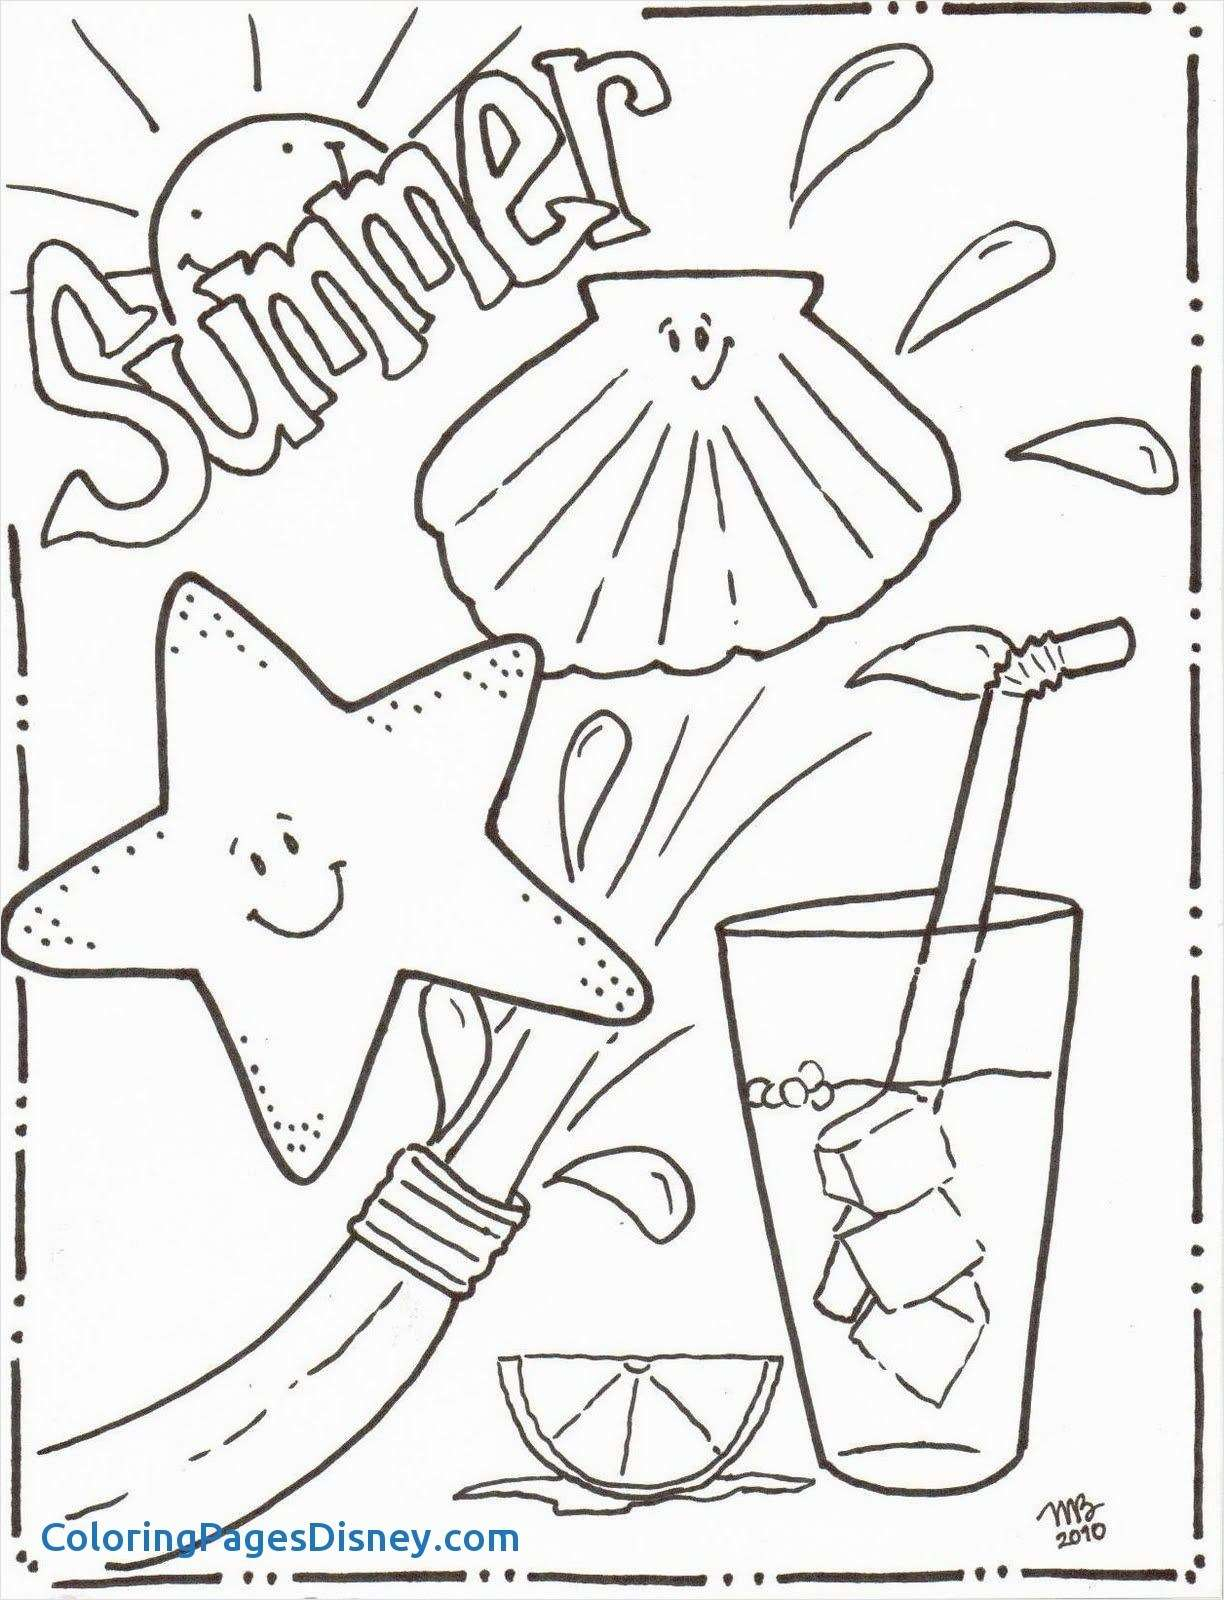 Nightmare before Christmas Coloring Pages  Gallery 16r - Free Download